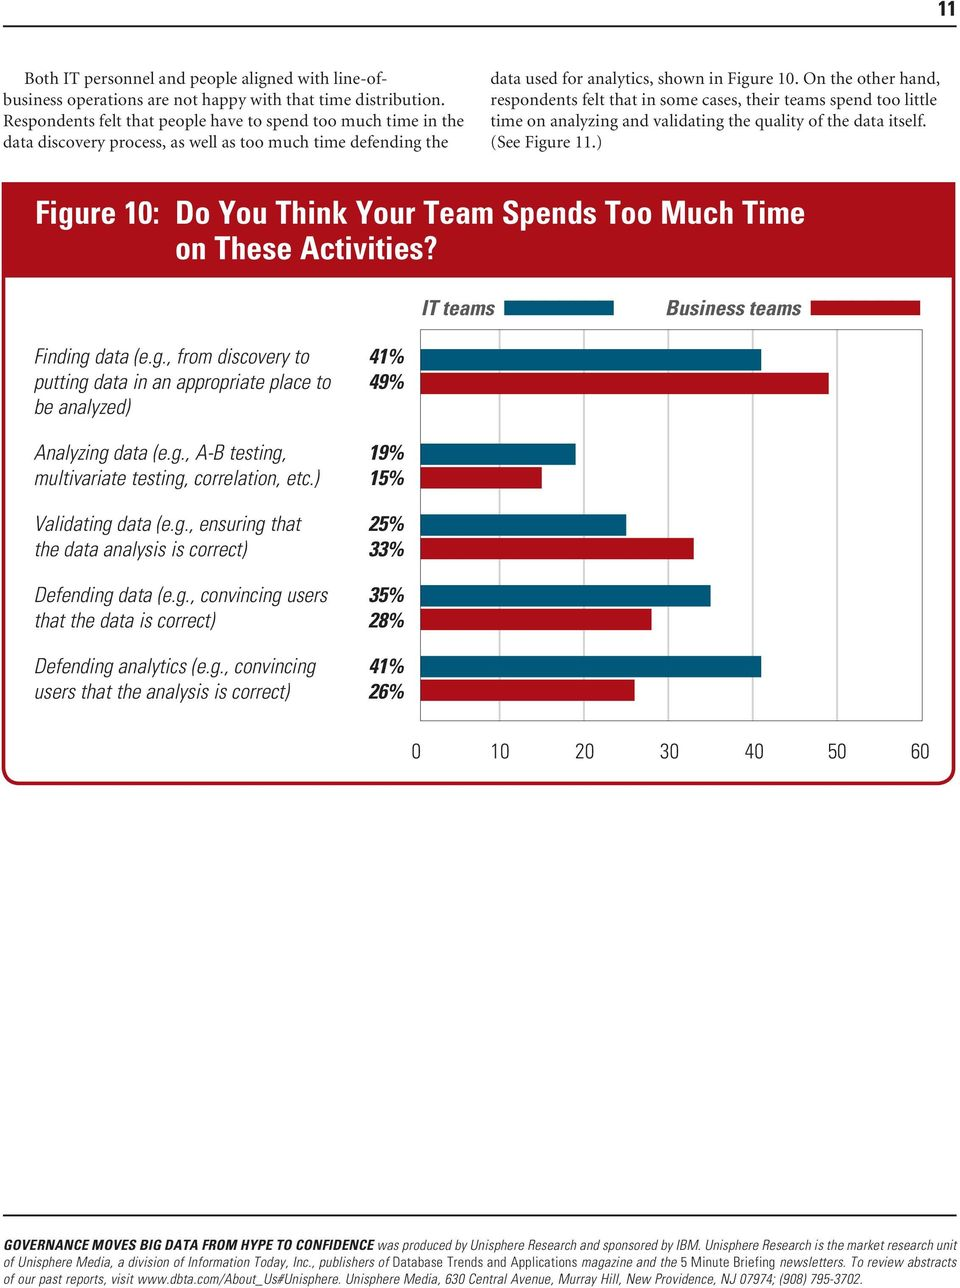 On the other hand, respondents felt that in some cases, their teams spend too little time on analyzing and validating the quality of the data itself. (See Figure 11.